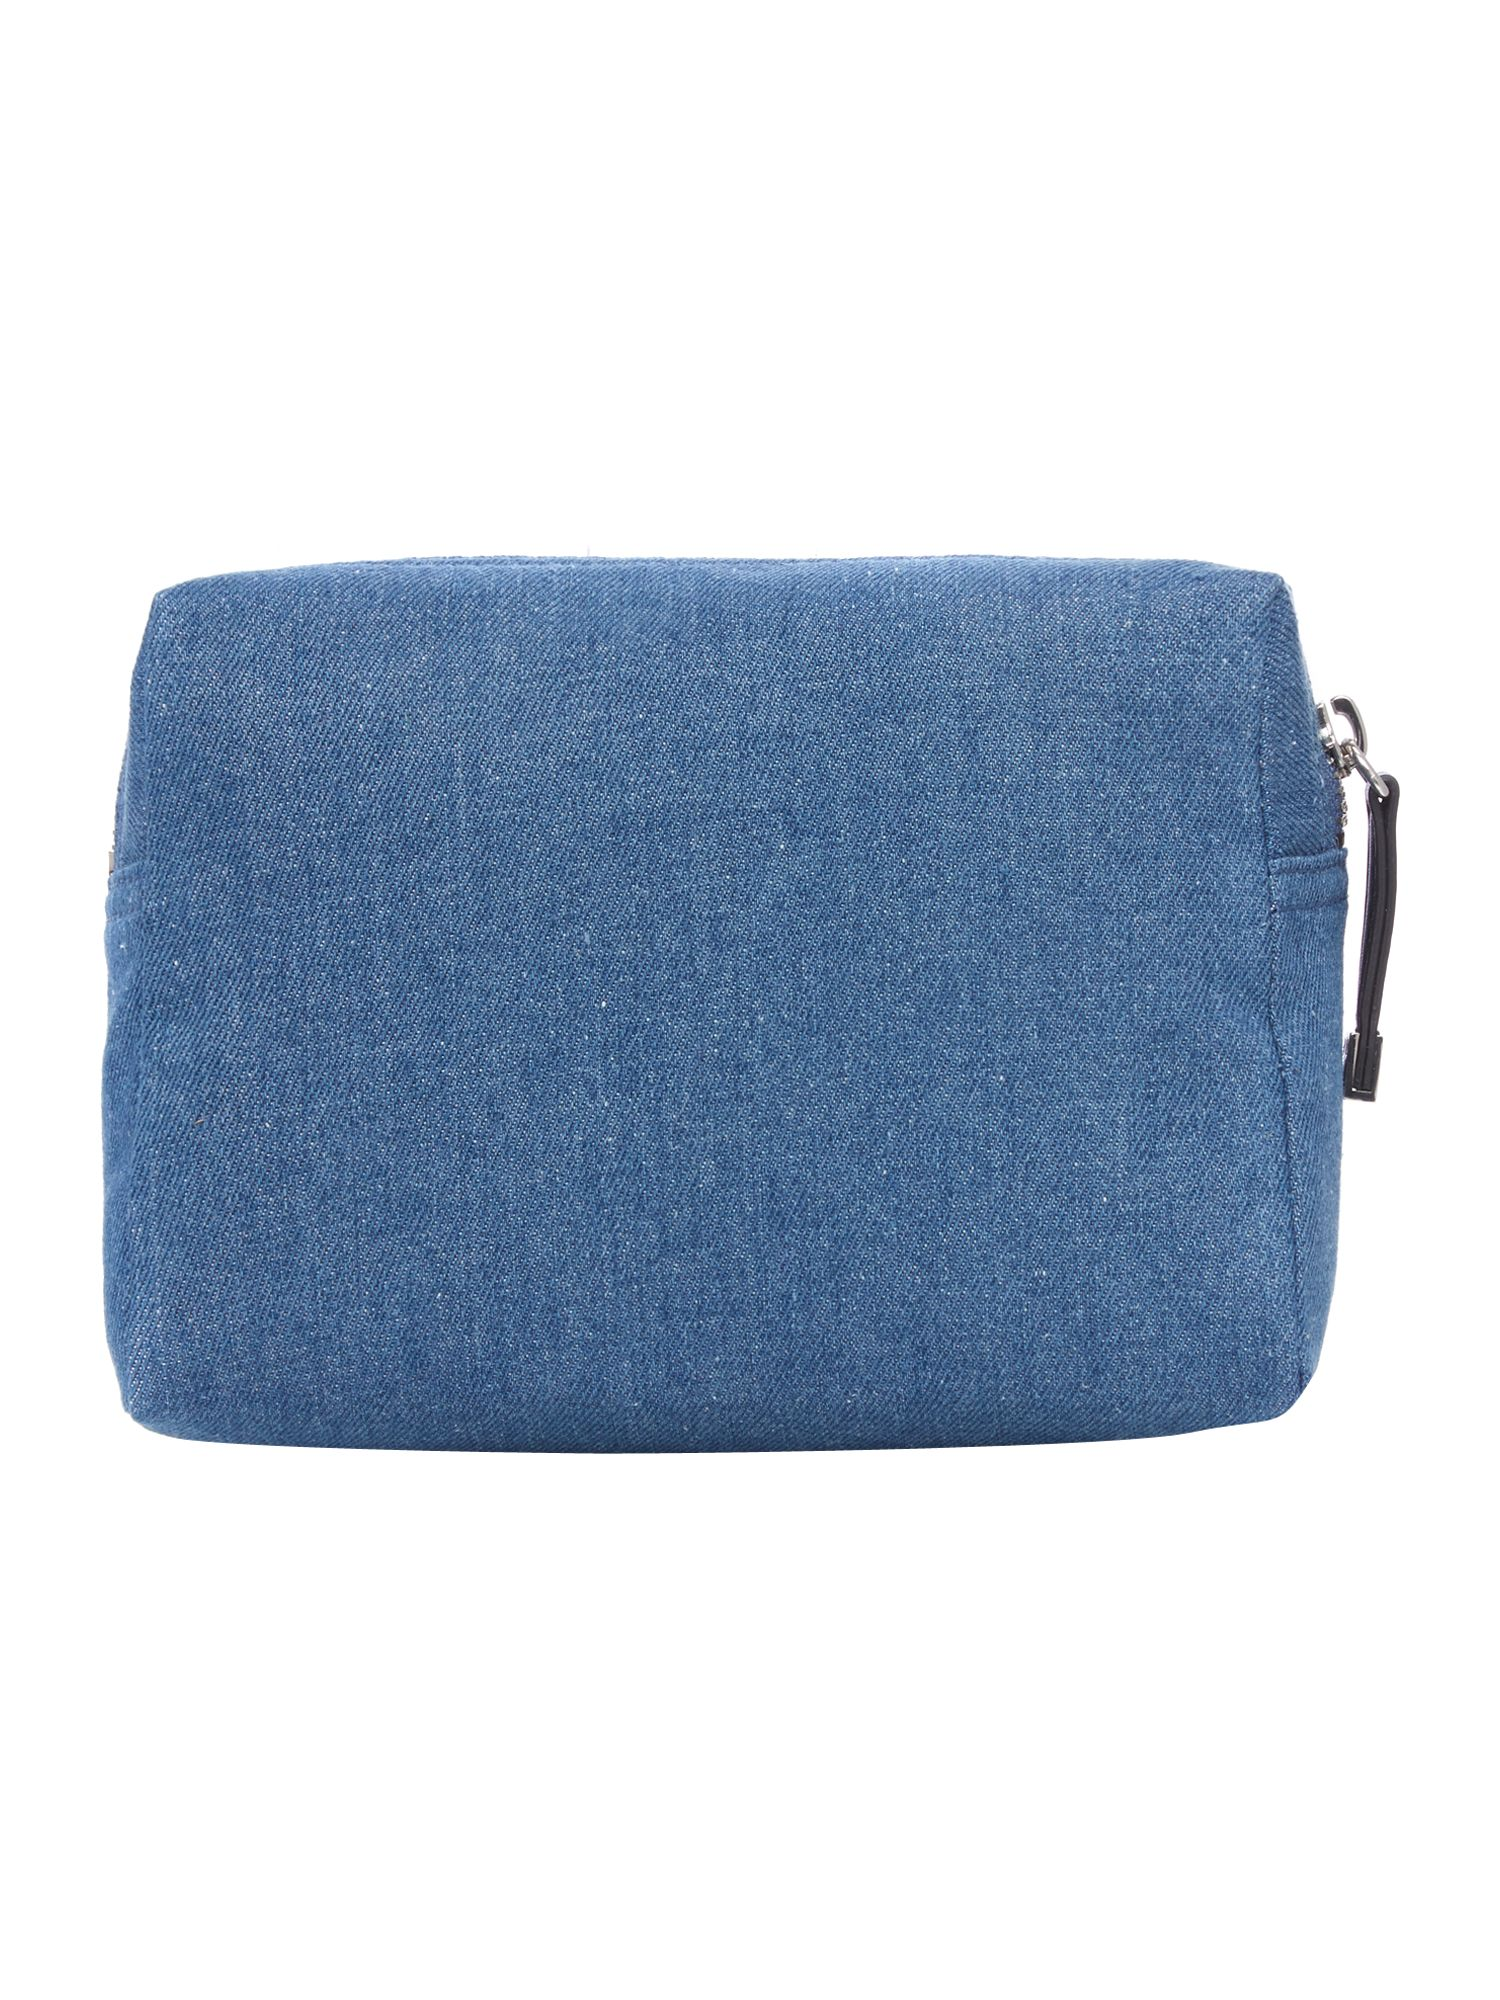 Blue medium cosmetic case